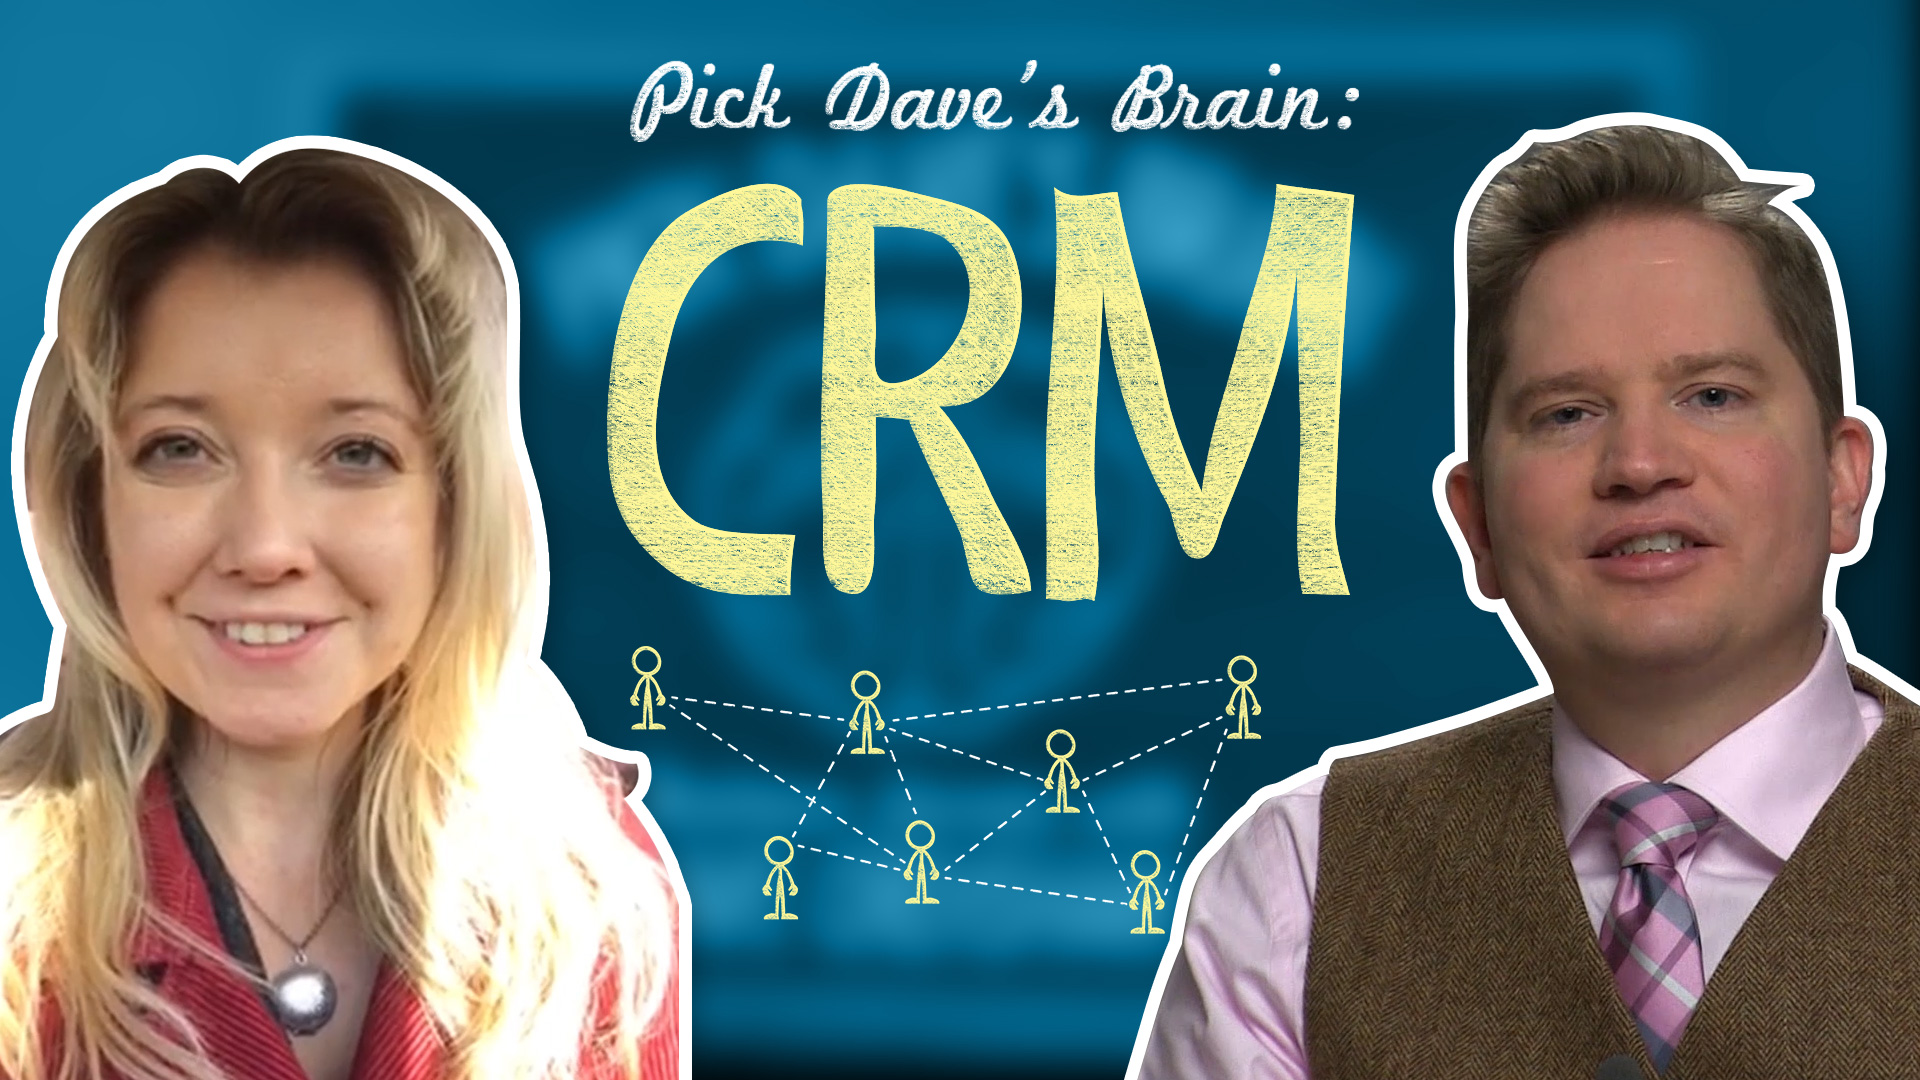 How to choose a personal CRM – Pick Dave's Brain